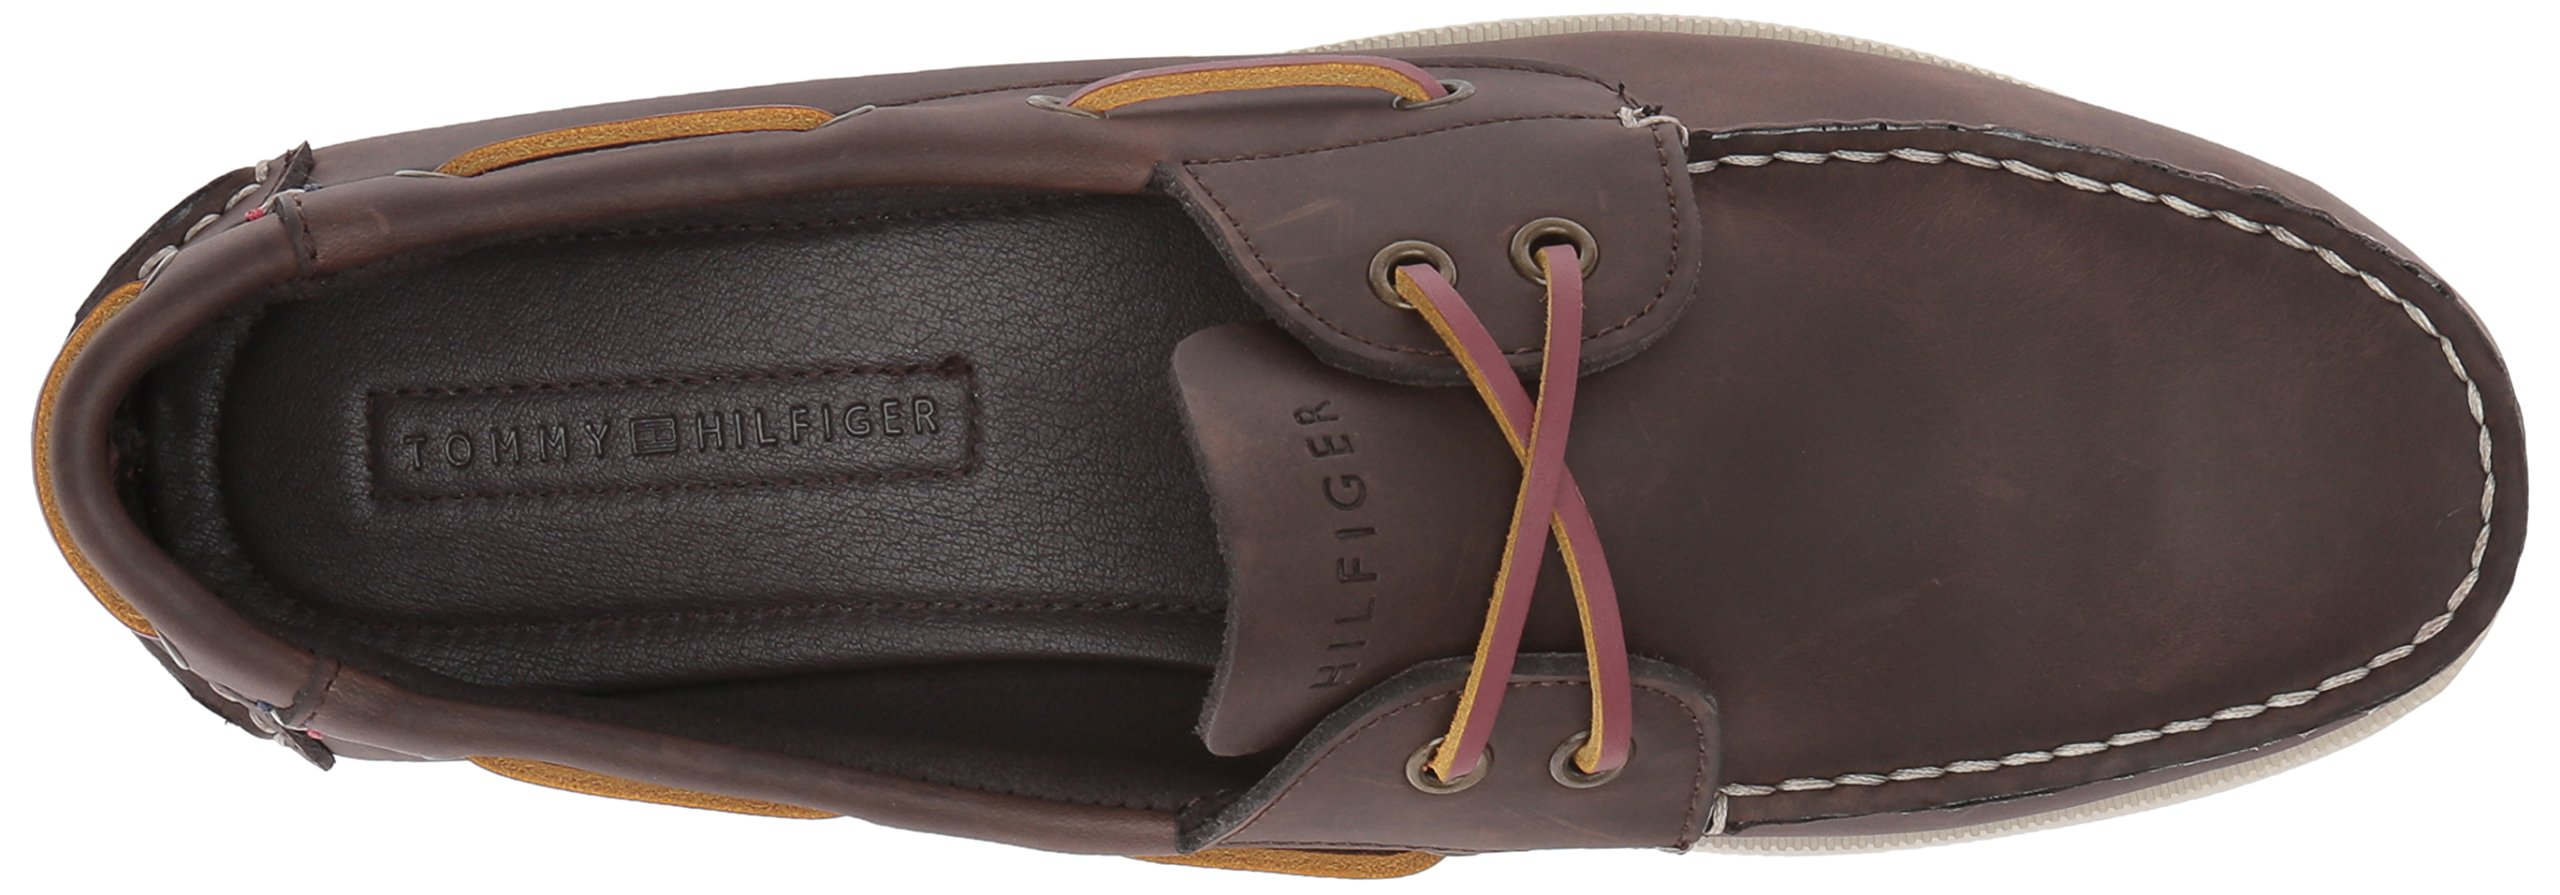 Tommy Hilfiger Men's Bowman Boat shoe,Coffee Bean,8.5 M US by Tommy Hilfiger (Image #8)